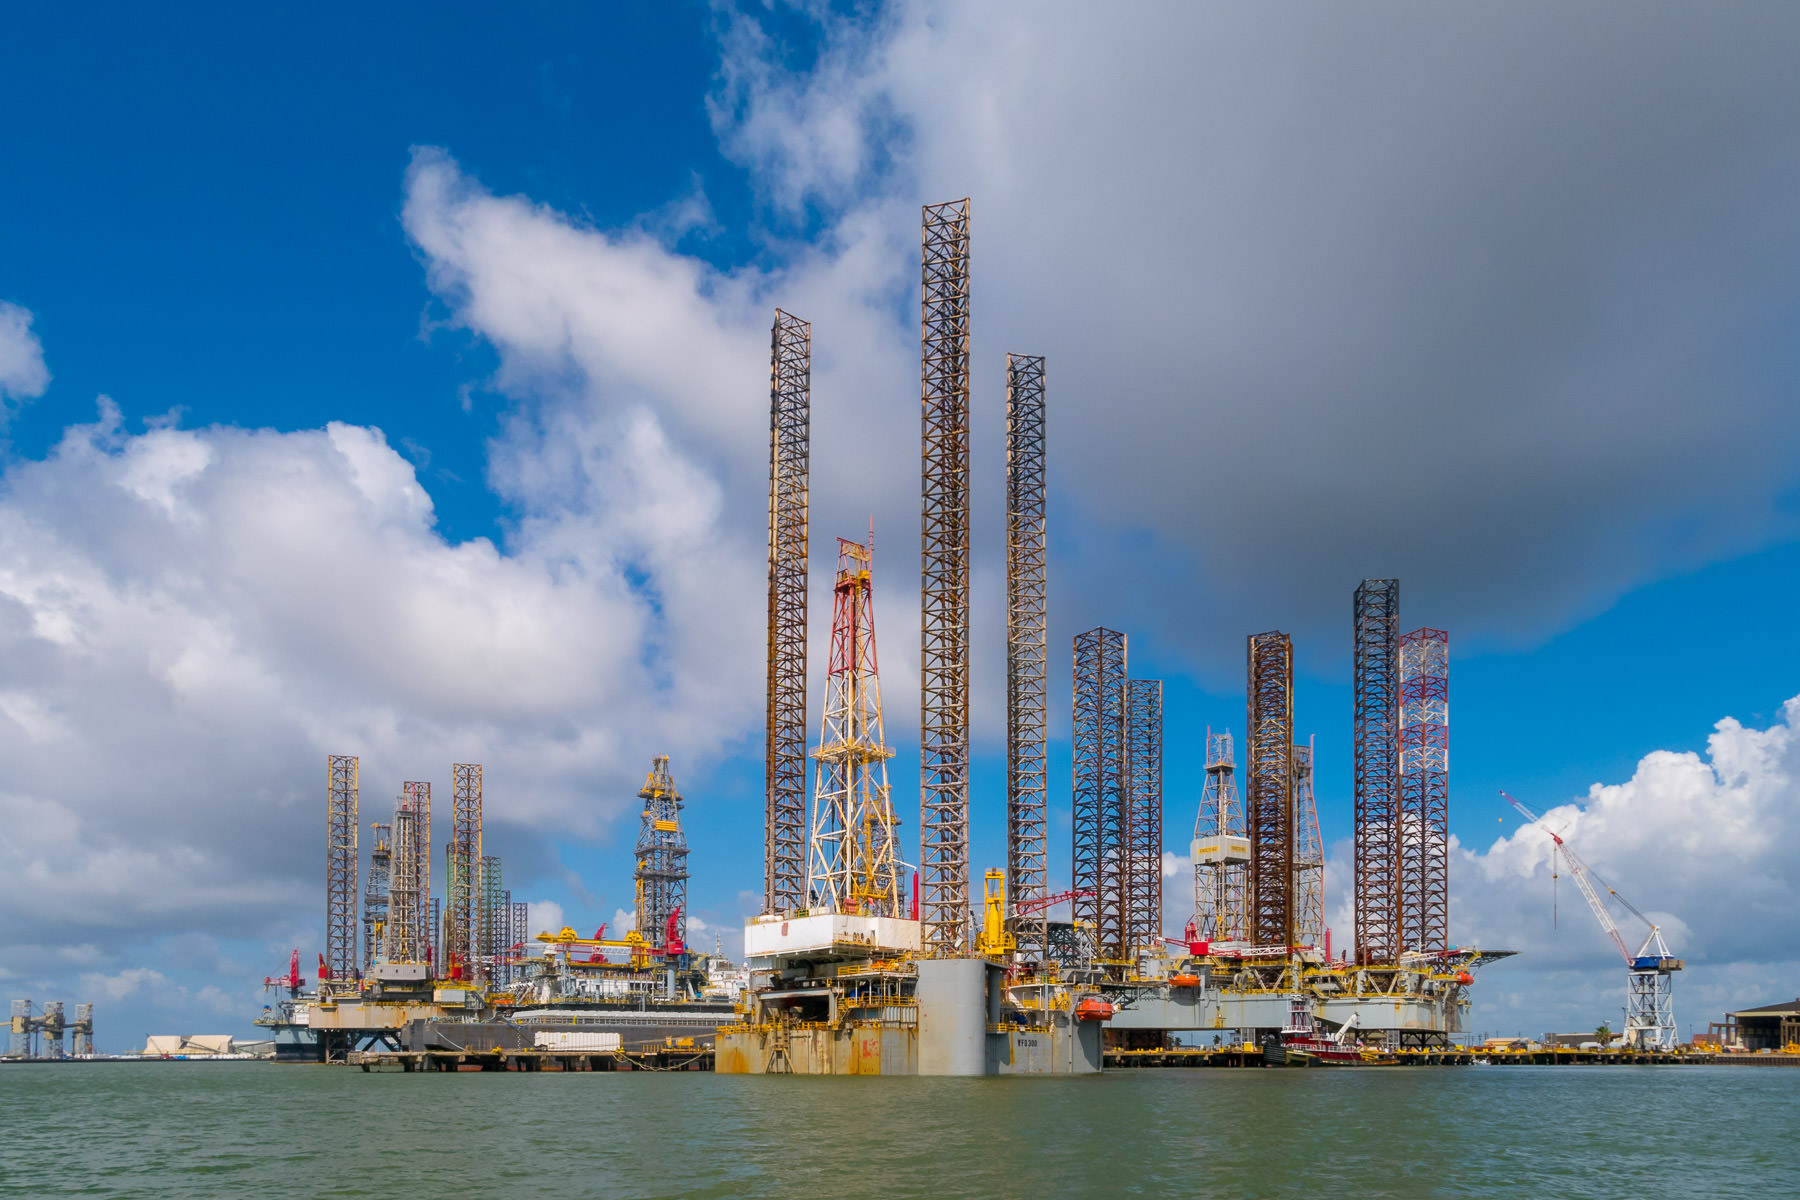 Long-legged jack-up oil platforms laid up for storage and repair at Pelican Island, Galveston, Texas.